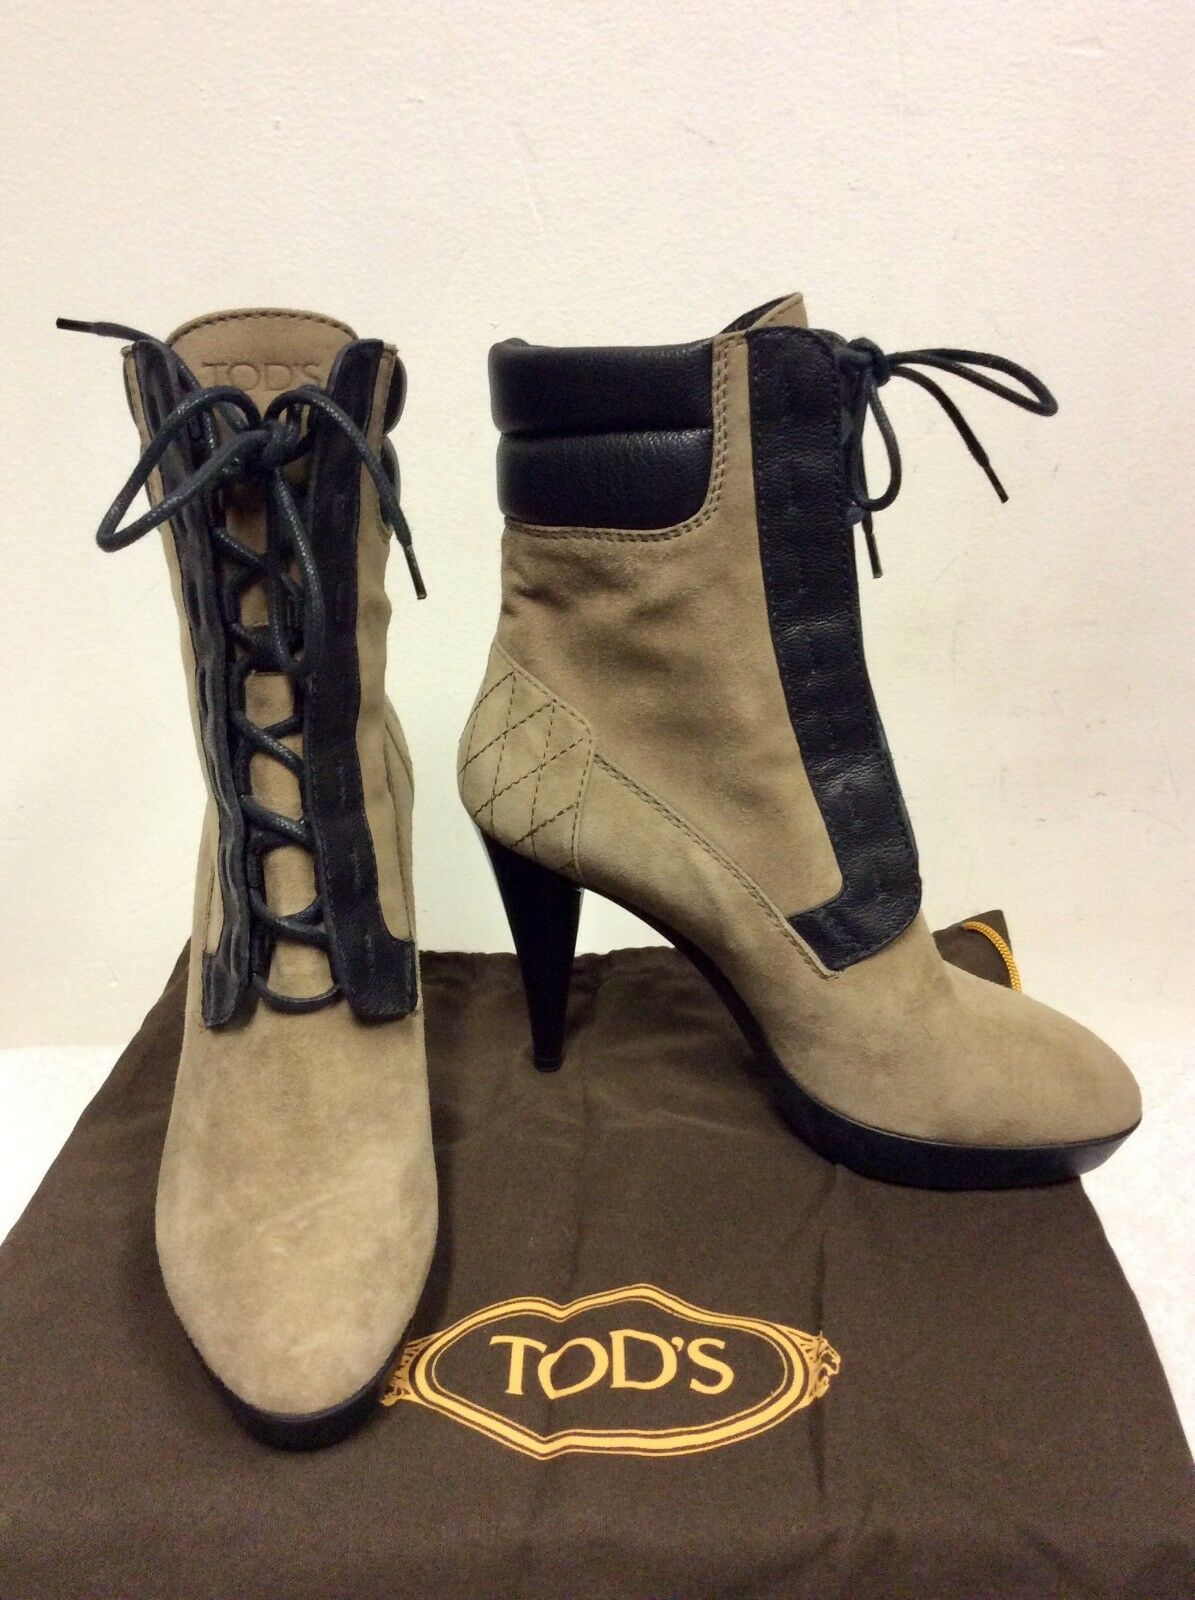 NEW TOD'S BROWN SUEDE & LEATHER TRIM LACE UP ANKLE BOOTS SIZE 3.5 36